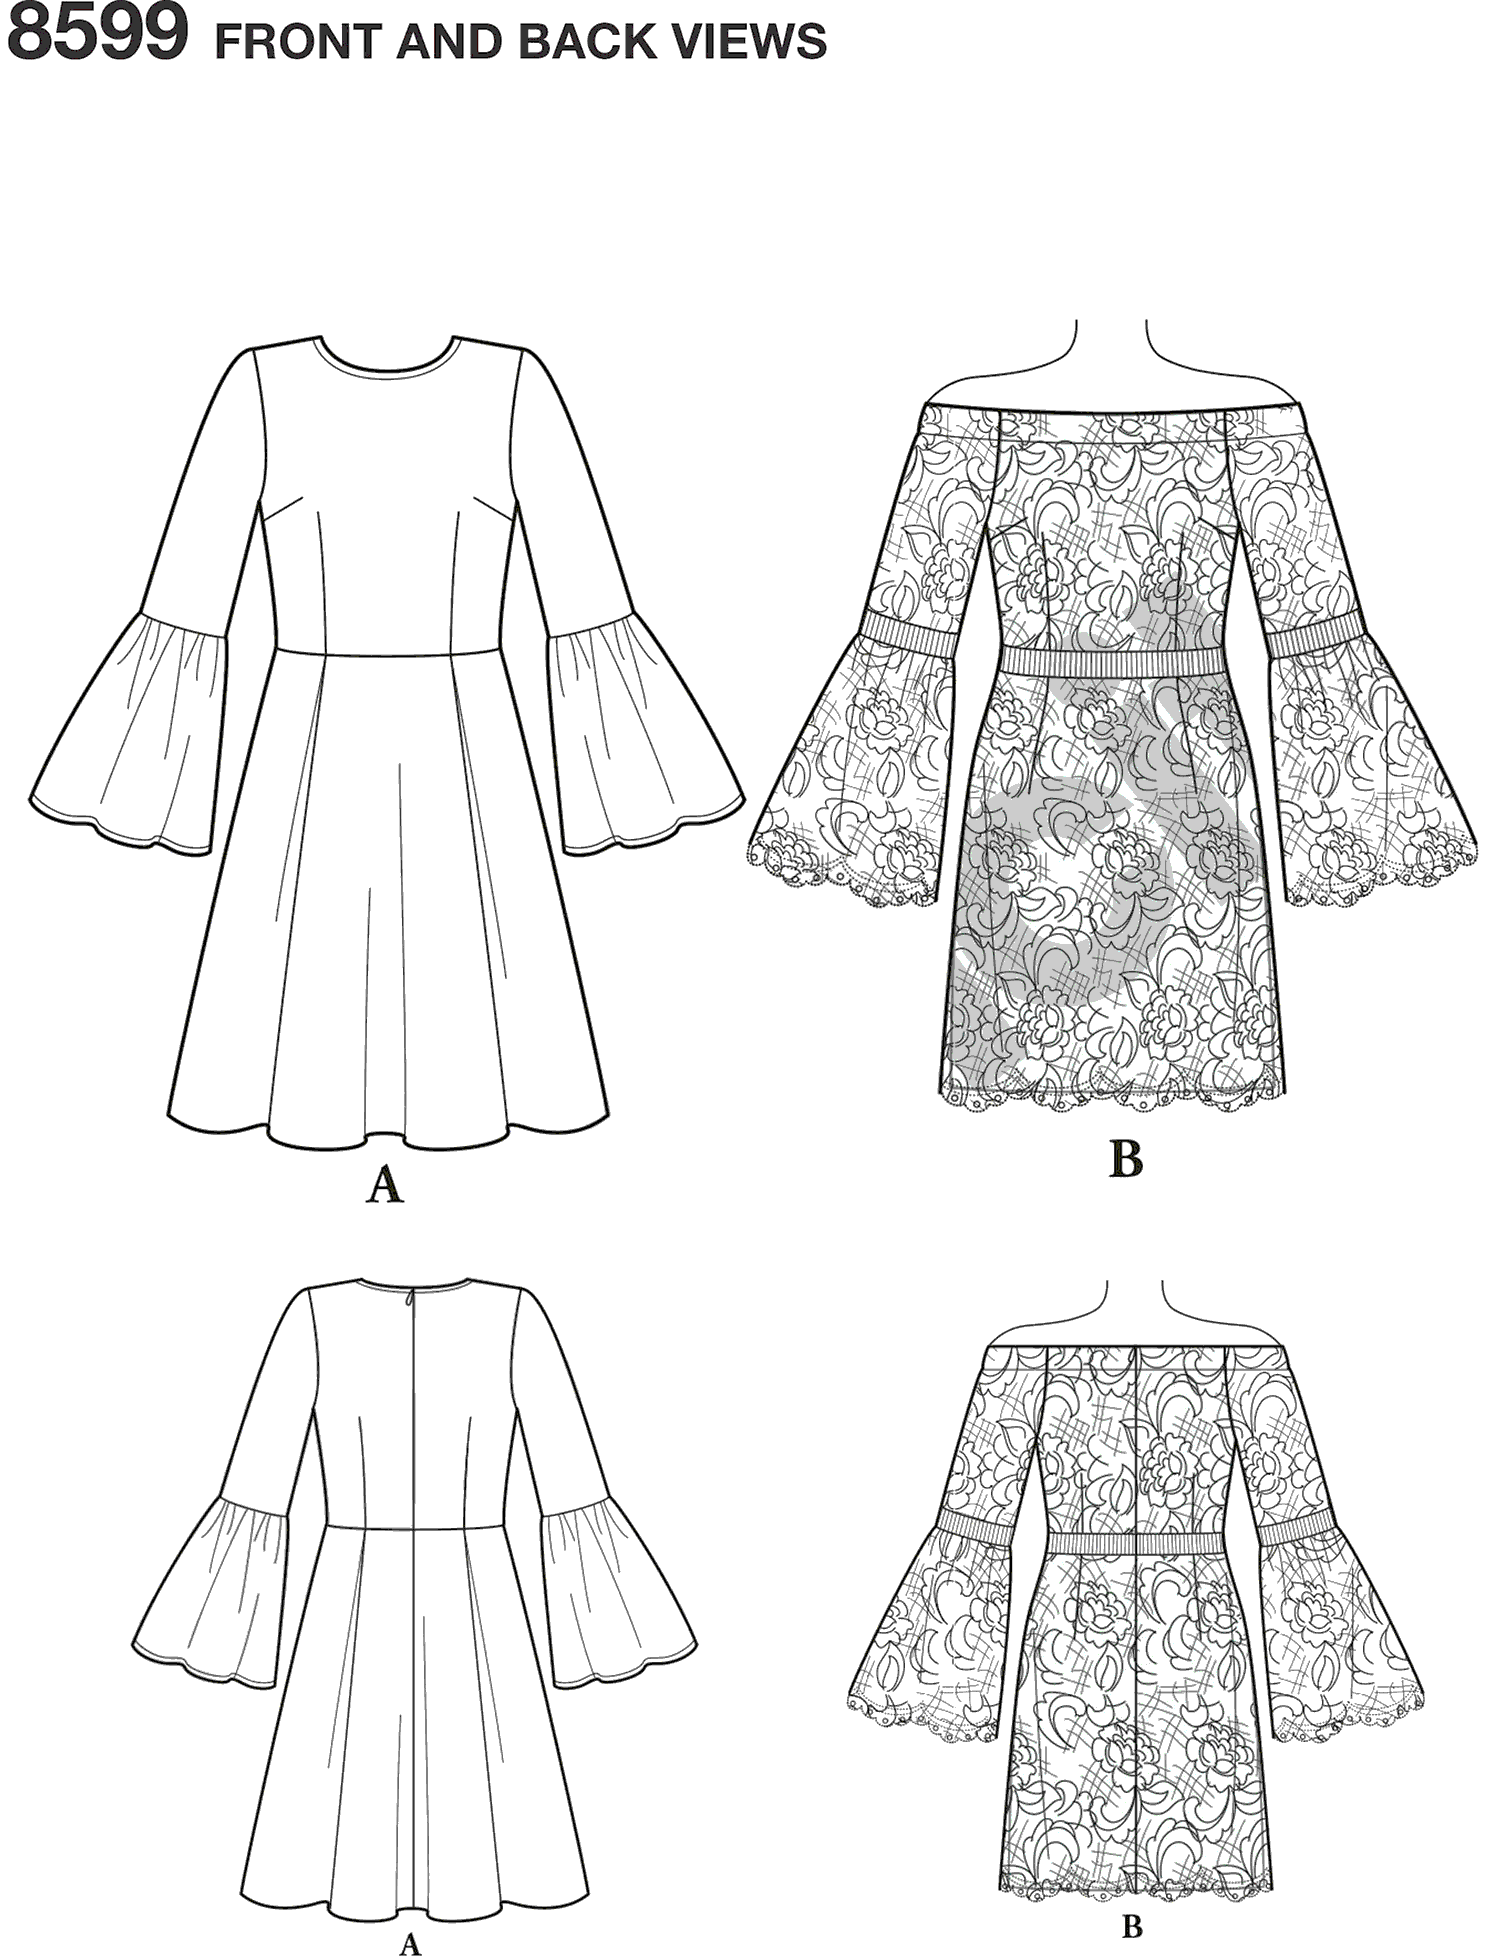 Simplicity Pattern 8599 Womens Petite Womens Cynthia Rowley Dresses Line Art From Patternsandplains.com